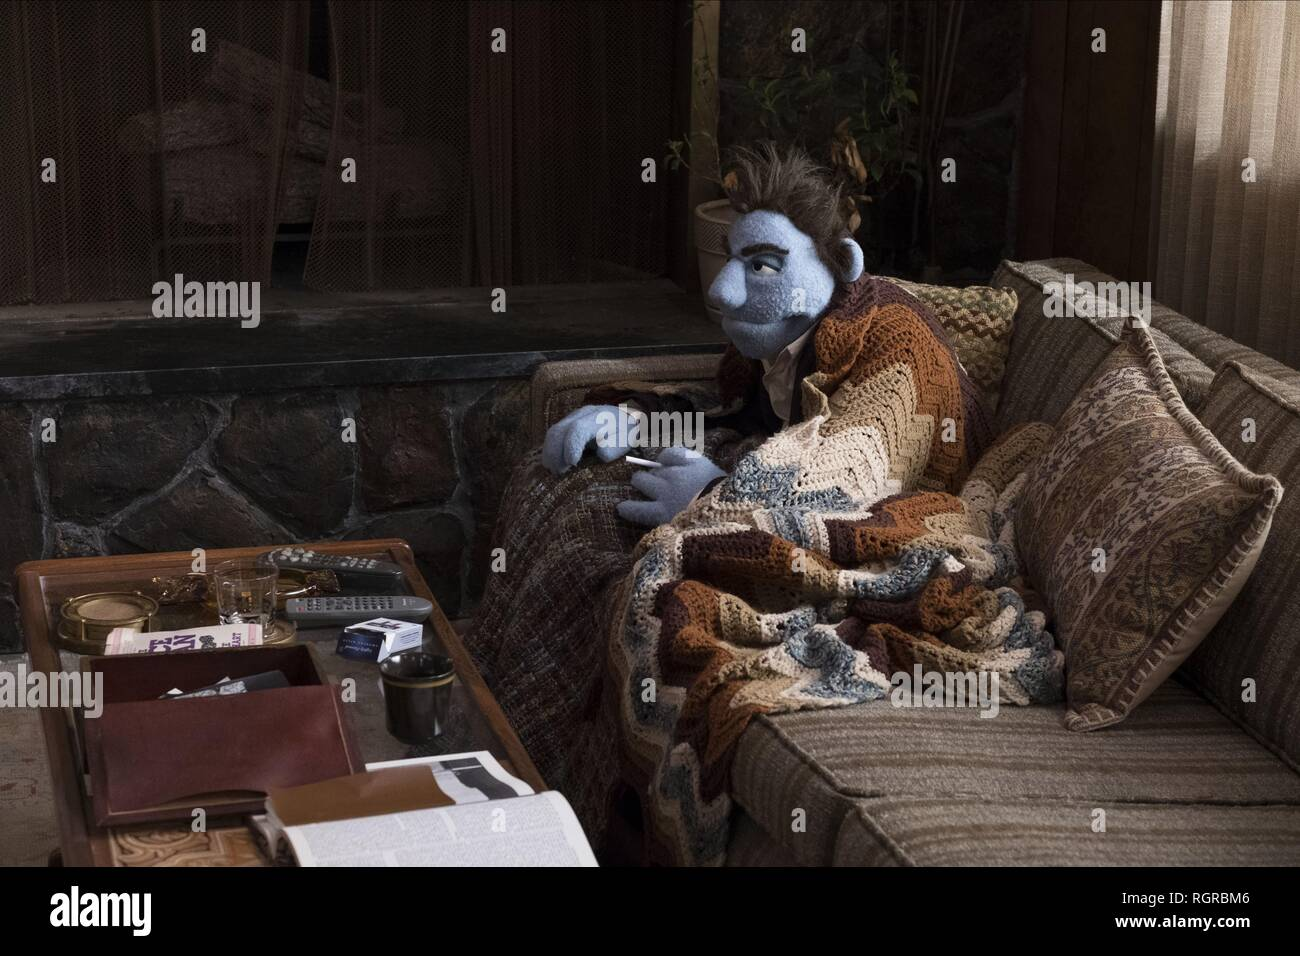 PHIL PHILIPS THE HAPPYTIME MURDERS (2018) - Stock Image